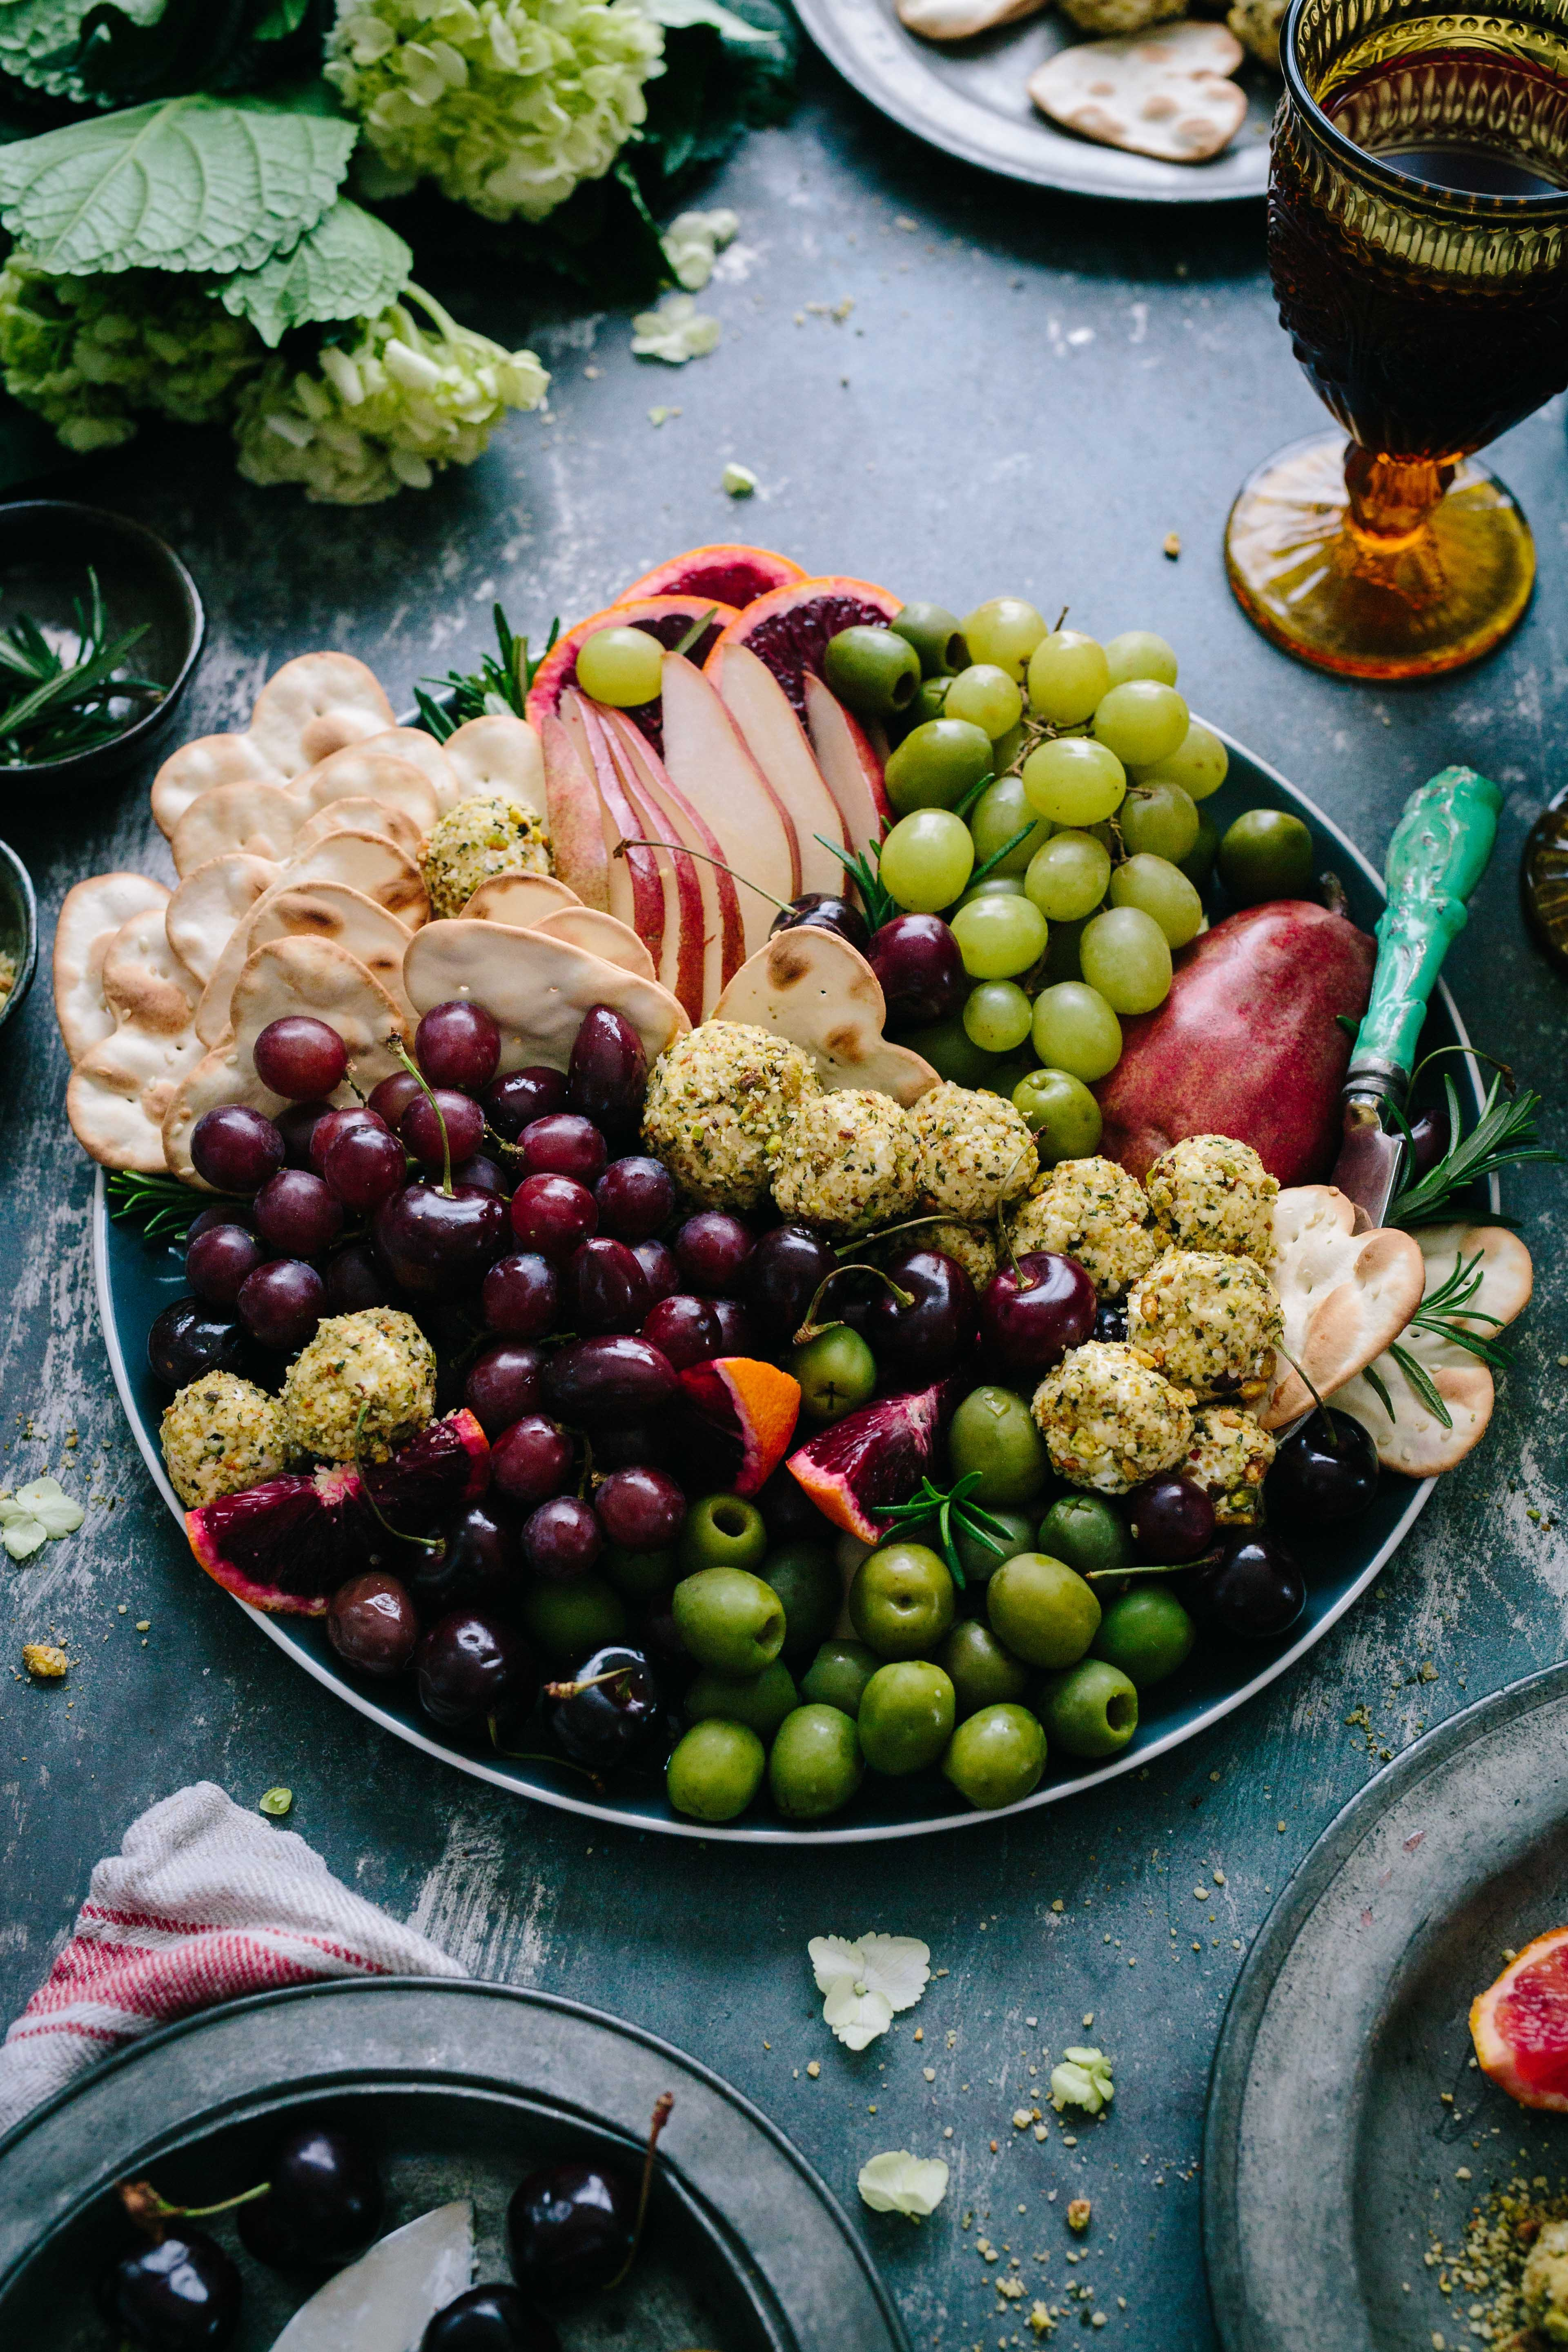 A large plate of grapes and olives.